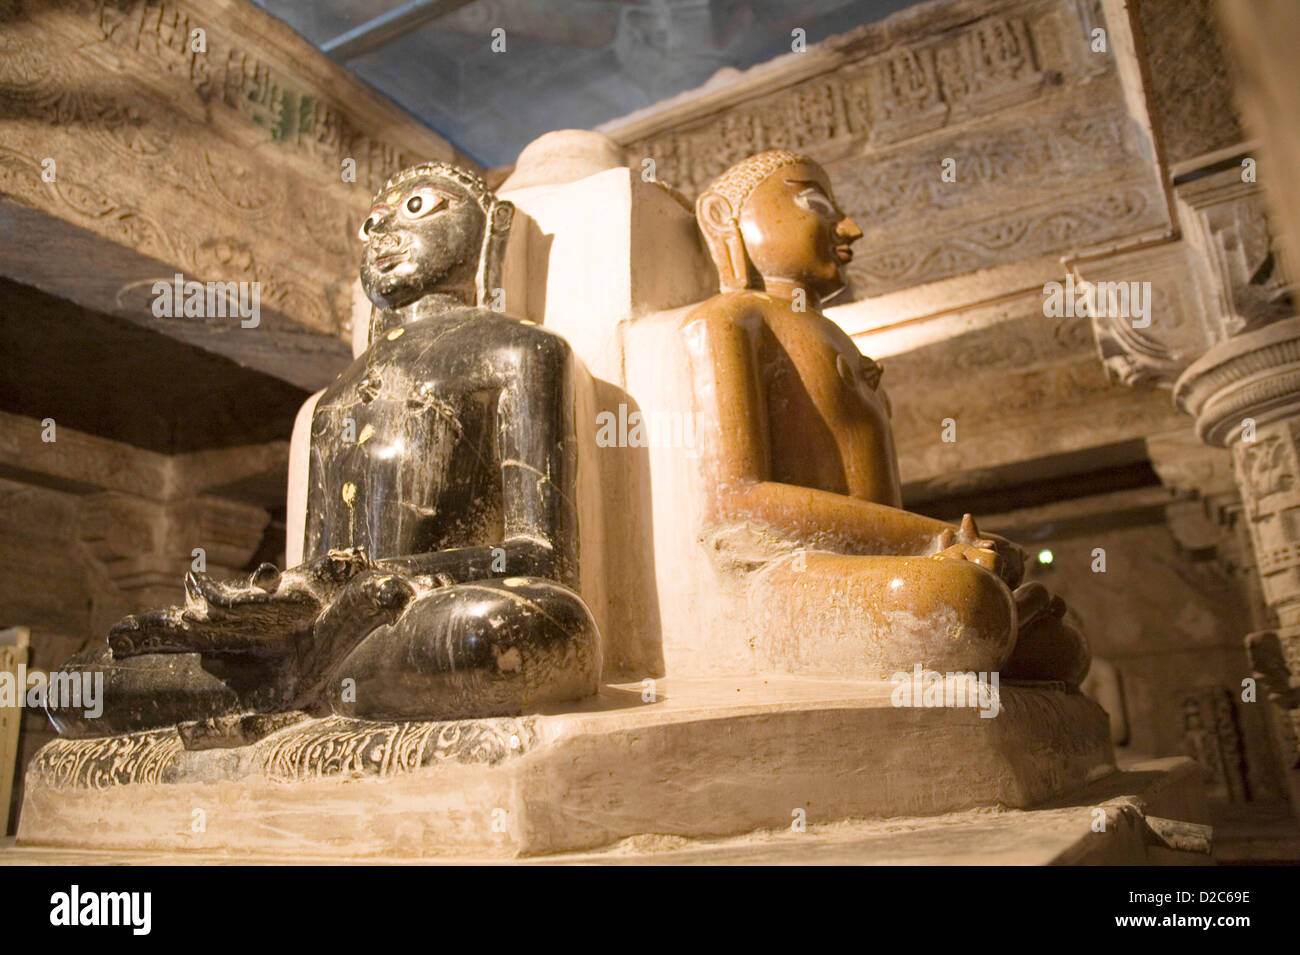 Black White Marble Statues Teerathnkar In Meditation Padmasanam Dhyana Yogic Posture 2000 Year Old Ancient Monument - Stock Image